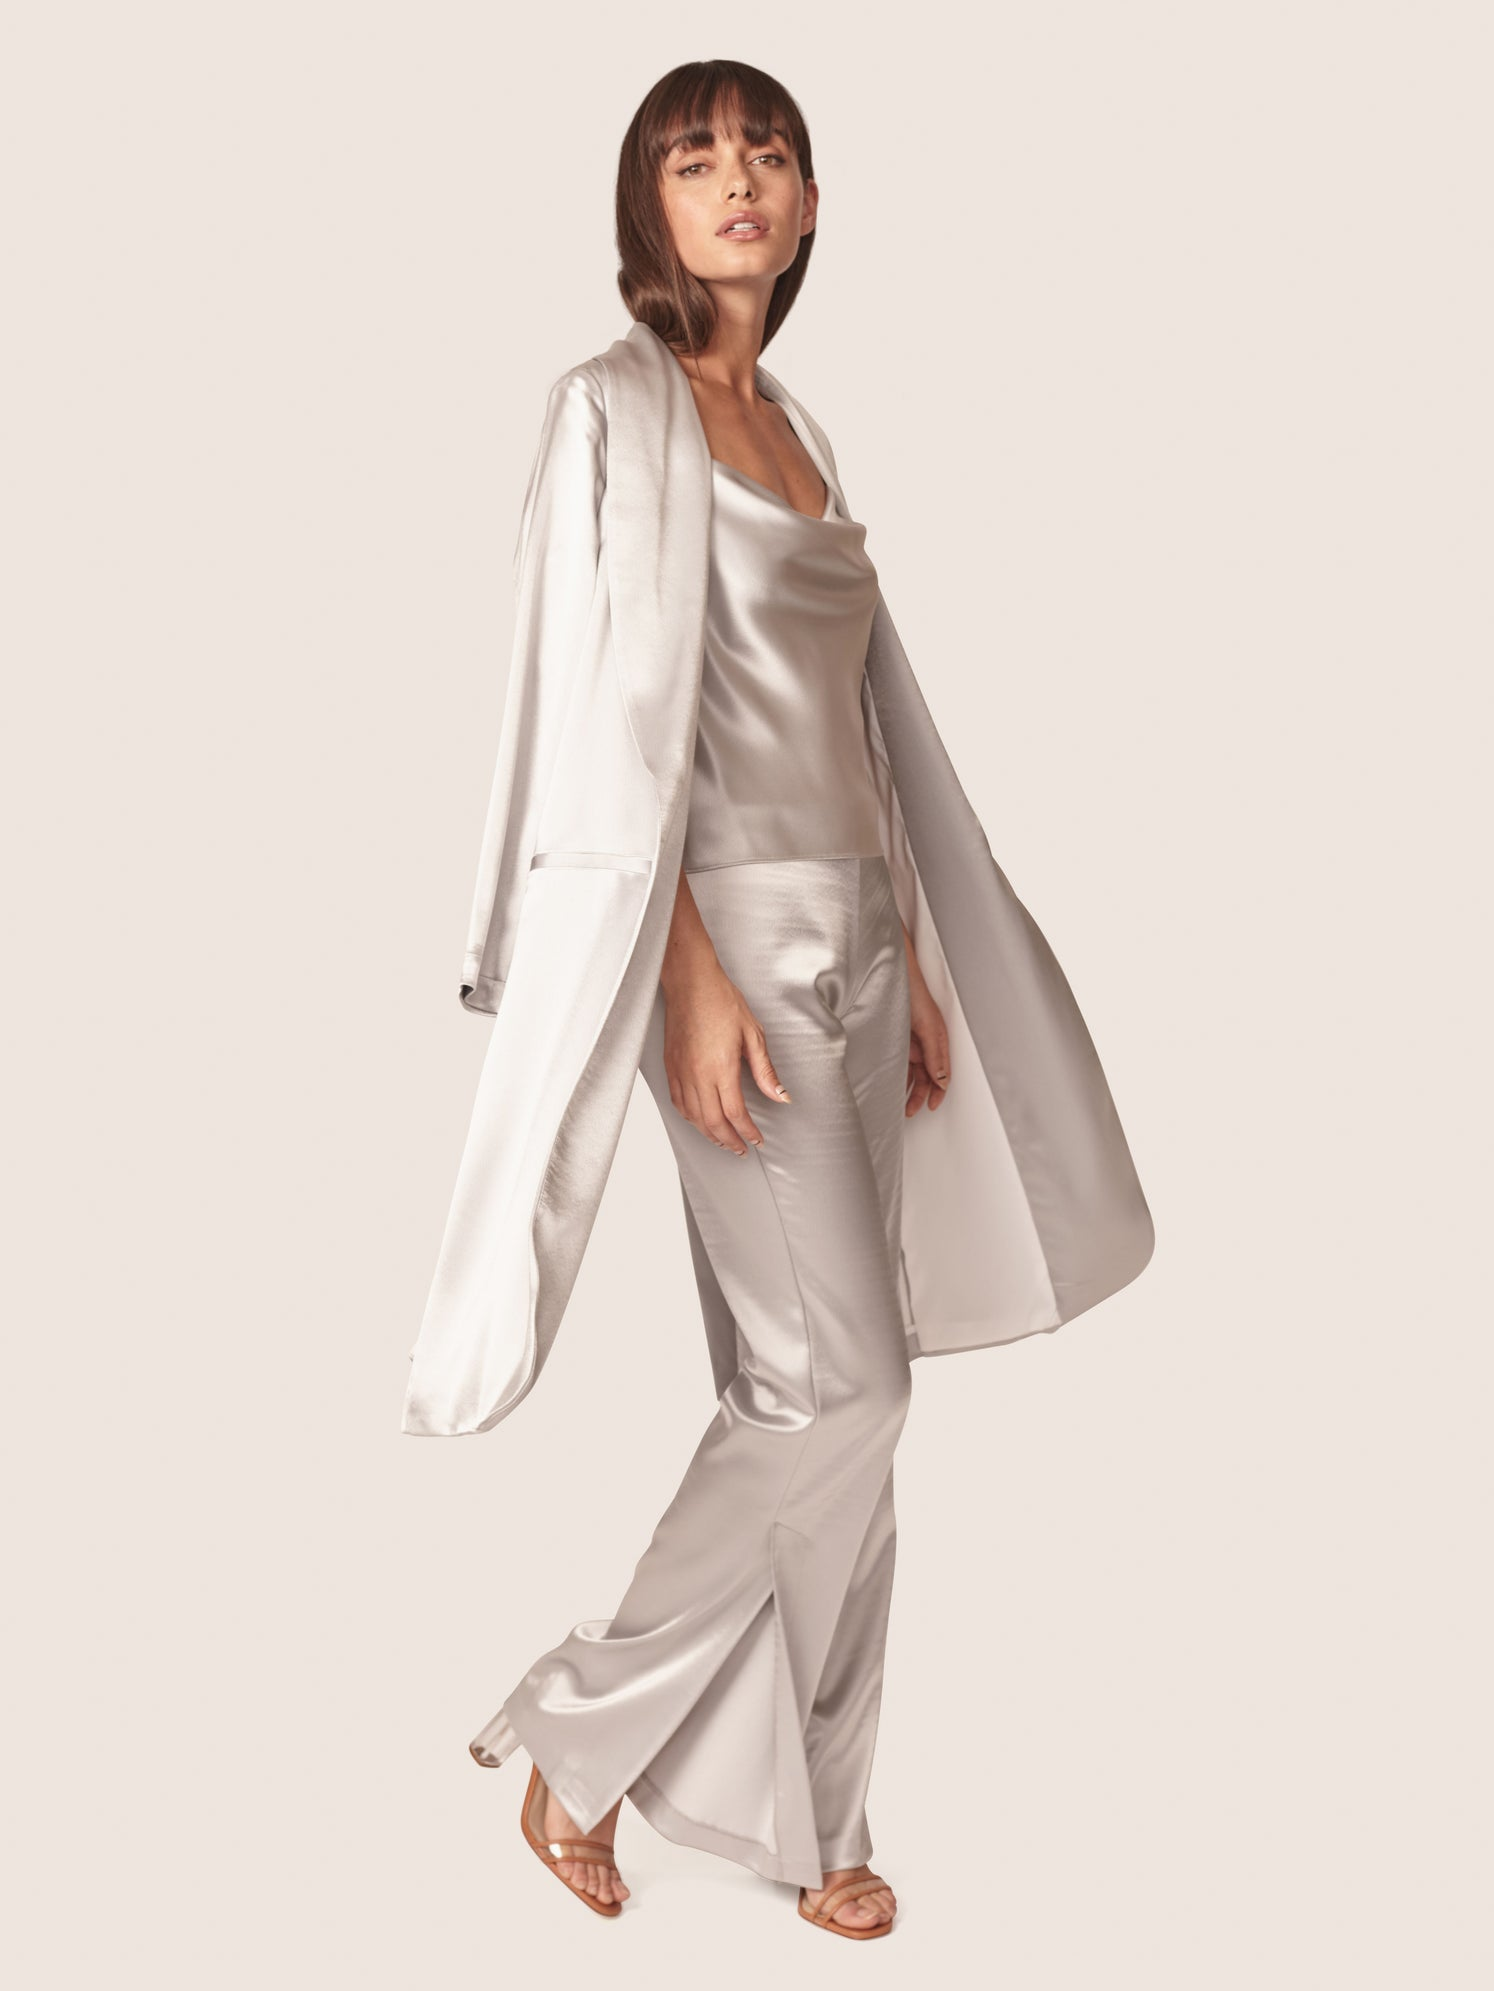 Silver satin duster length jacket